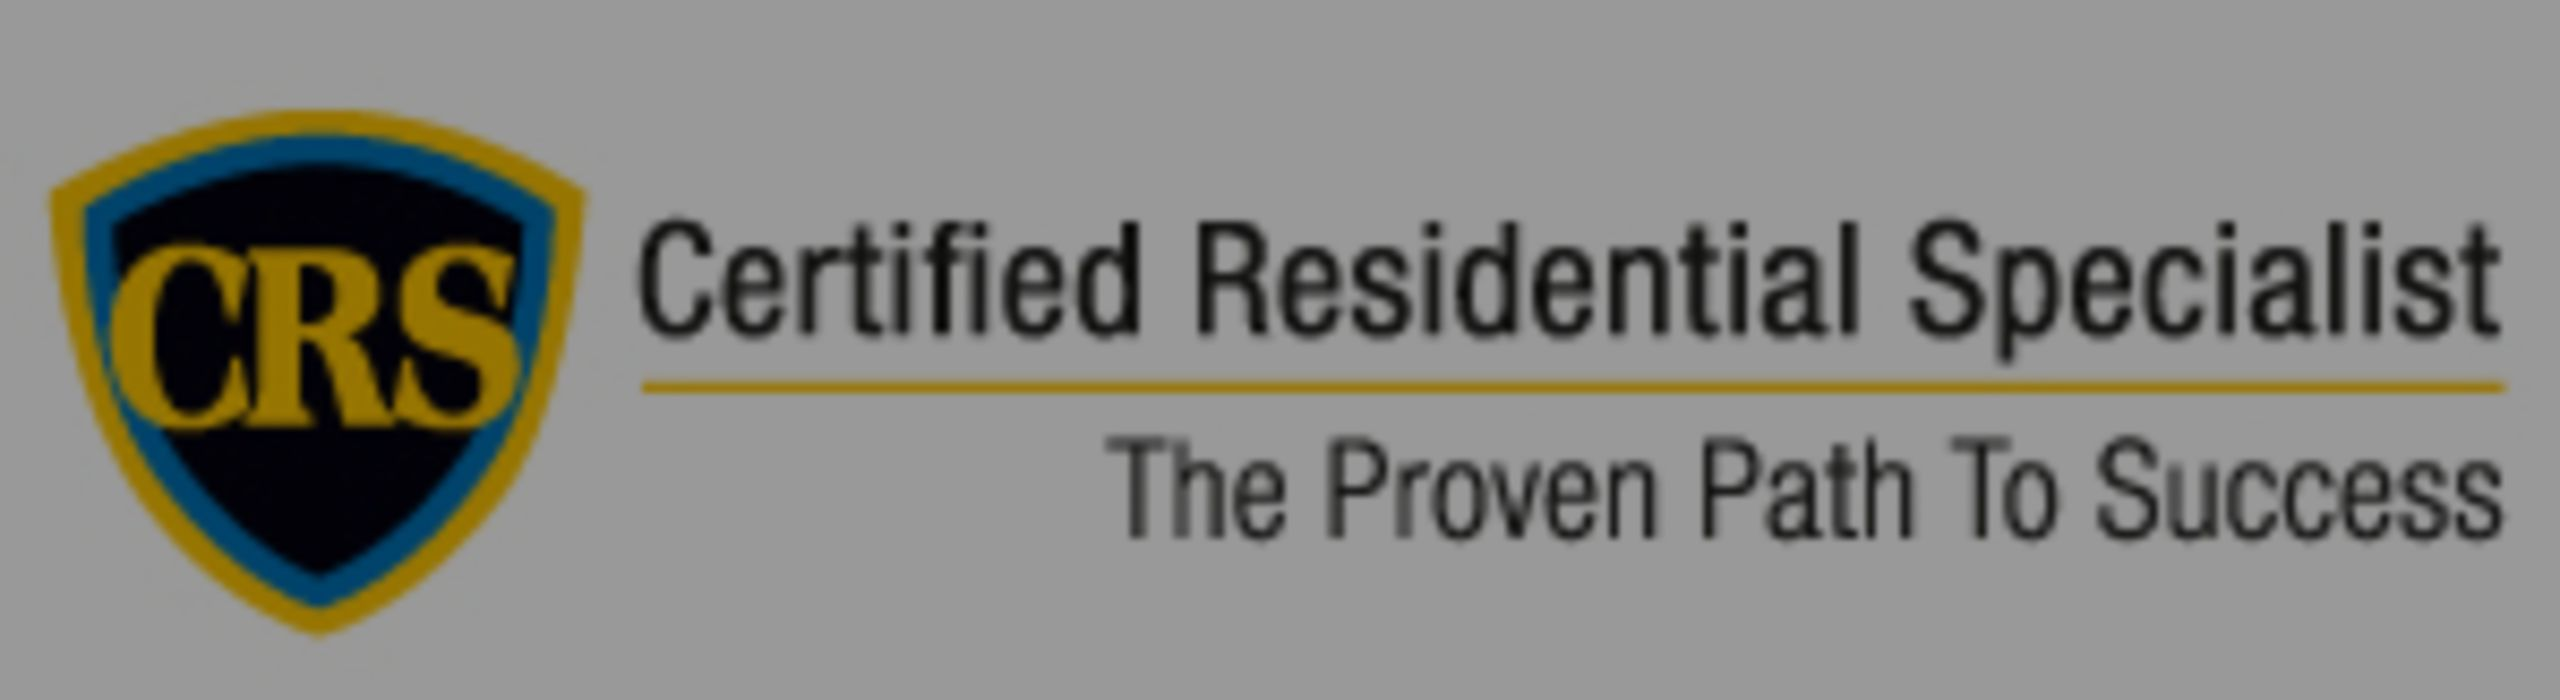 Certified Residential Specialist/CRS